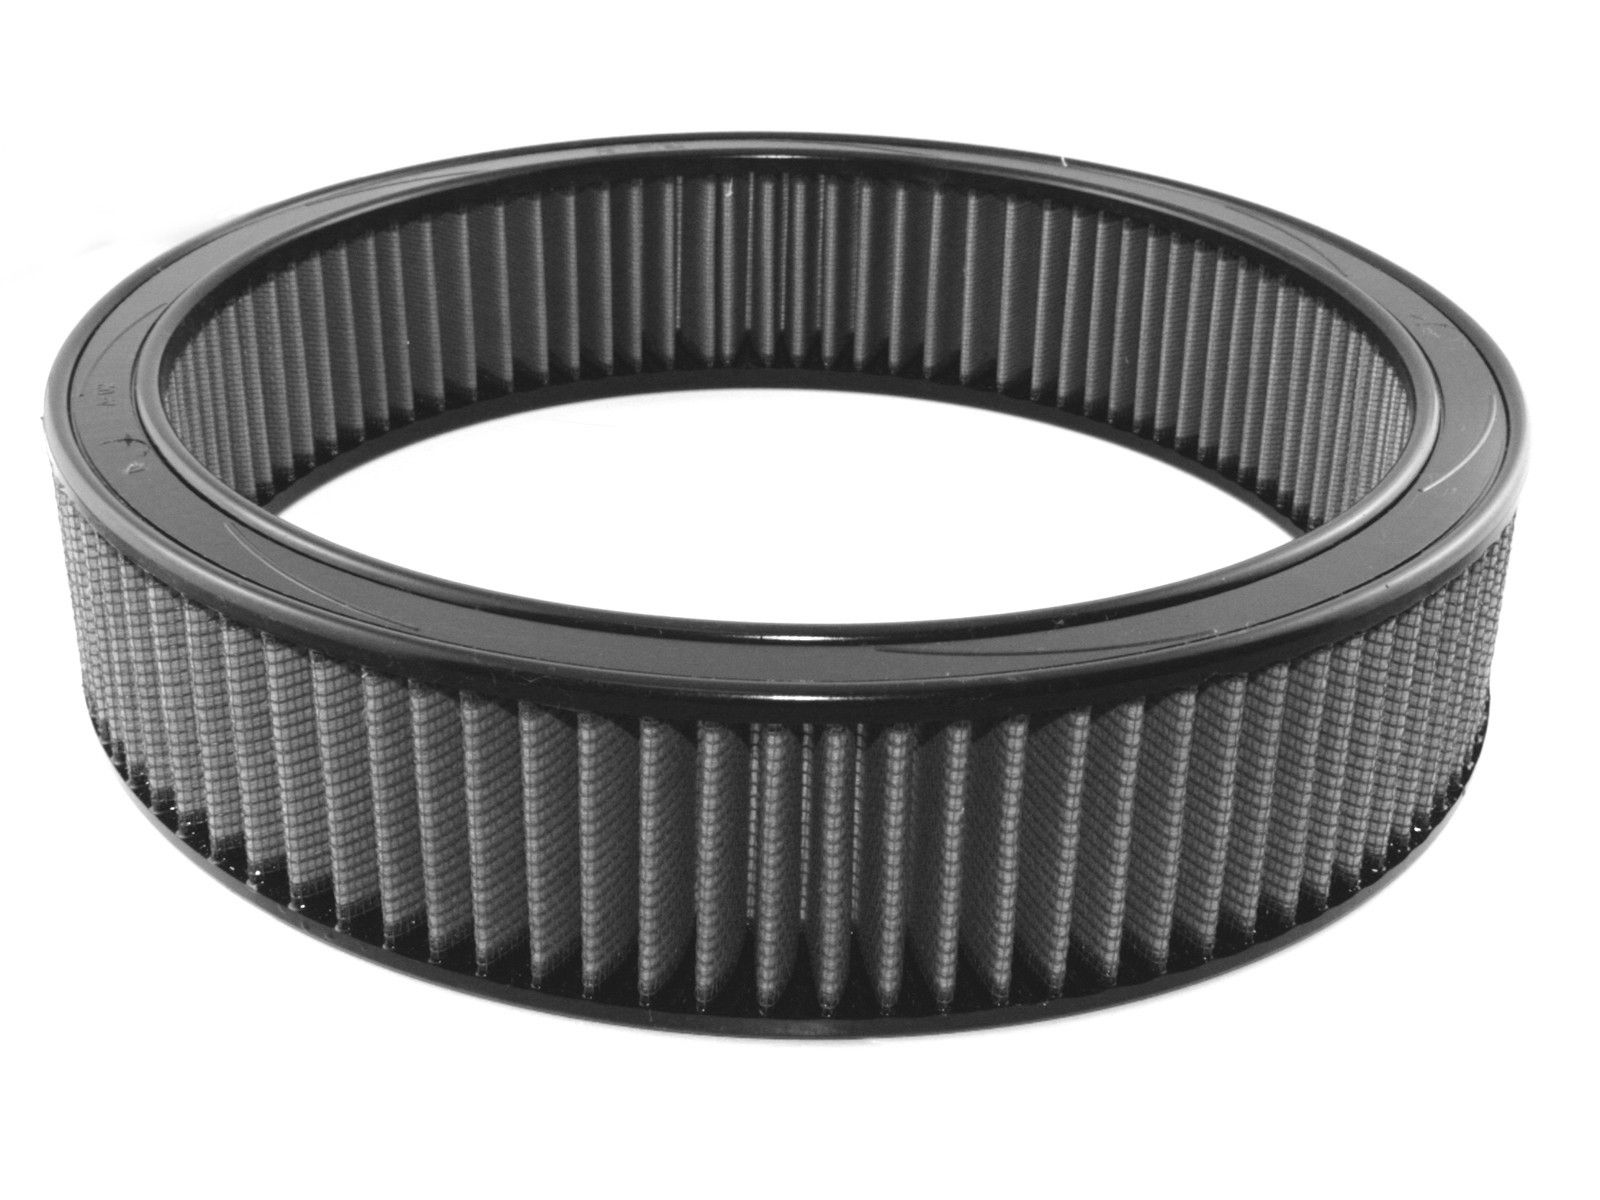 aFe POWER 11-10009 Magnum FLOW Pro DRY S Air Filter